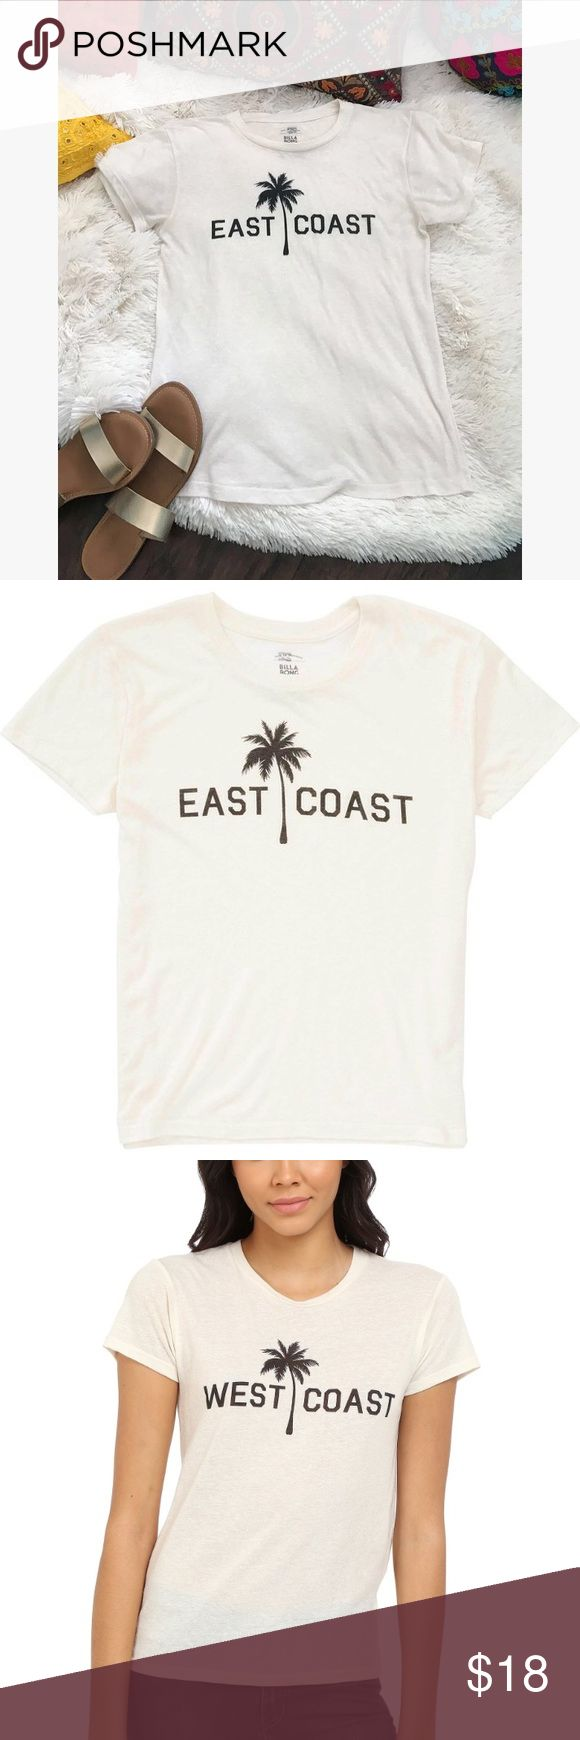 Billabong East Coast Palm Tee in white so we all know the east coast is the beast coast! rep your coast in this super cute and comfy boyfriend tee by Billabong. wear with your favorite shorts or flare pants for the perfect surfer chic outfit. excellent condition billabong east coast palm tee in white... great condition with no rips or stains. size women's small. fits like shown on model in the last photo. Billabong Tops Tees - Short Sleeve